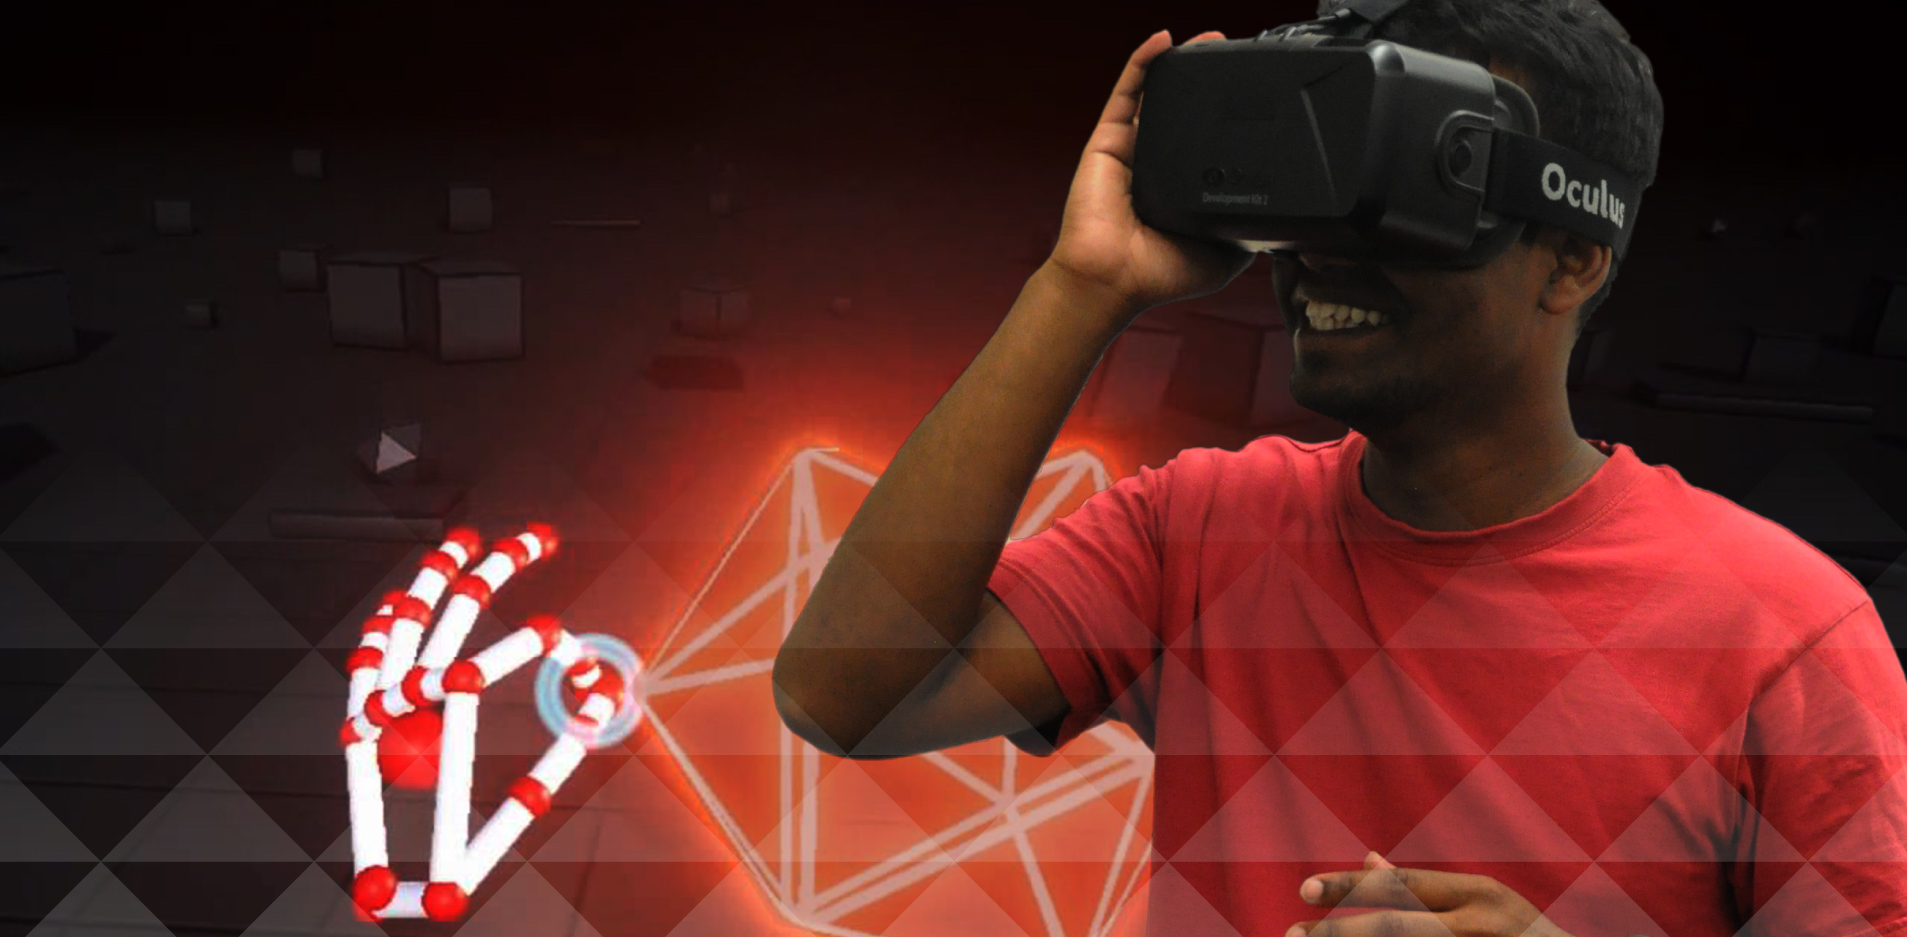 Research with virtual and augmented reality applications